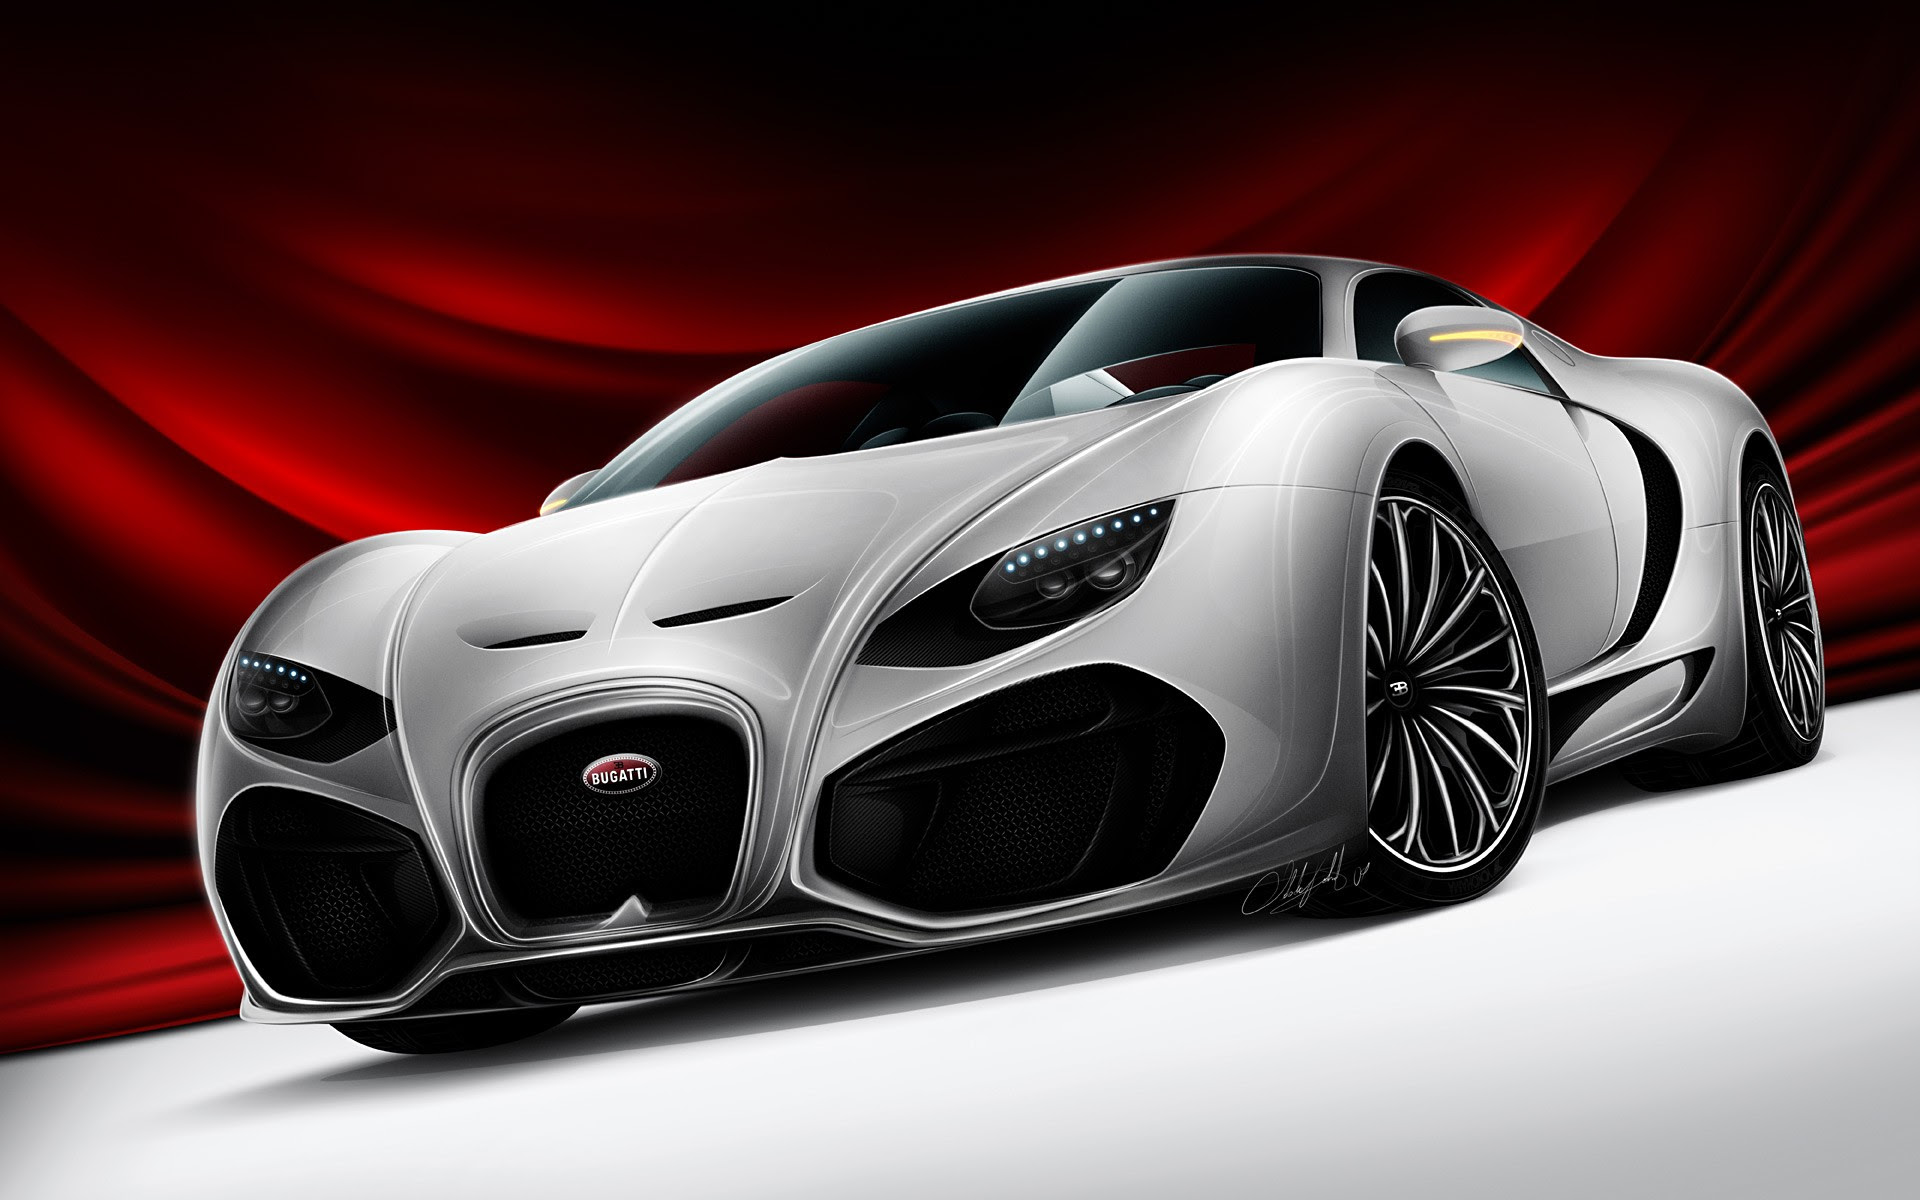 Exotic- Cars Hd Wallpaper Background Wallpapers - 9to5 Car ...